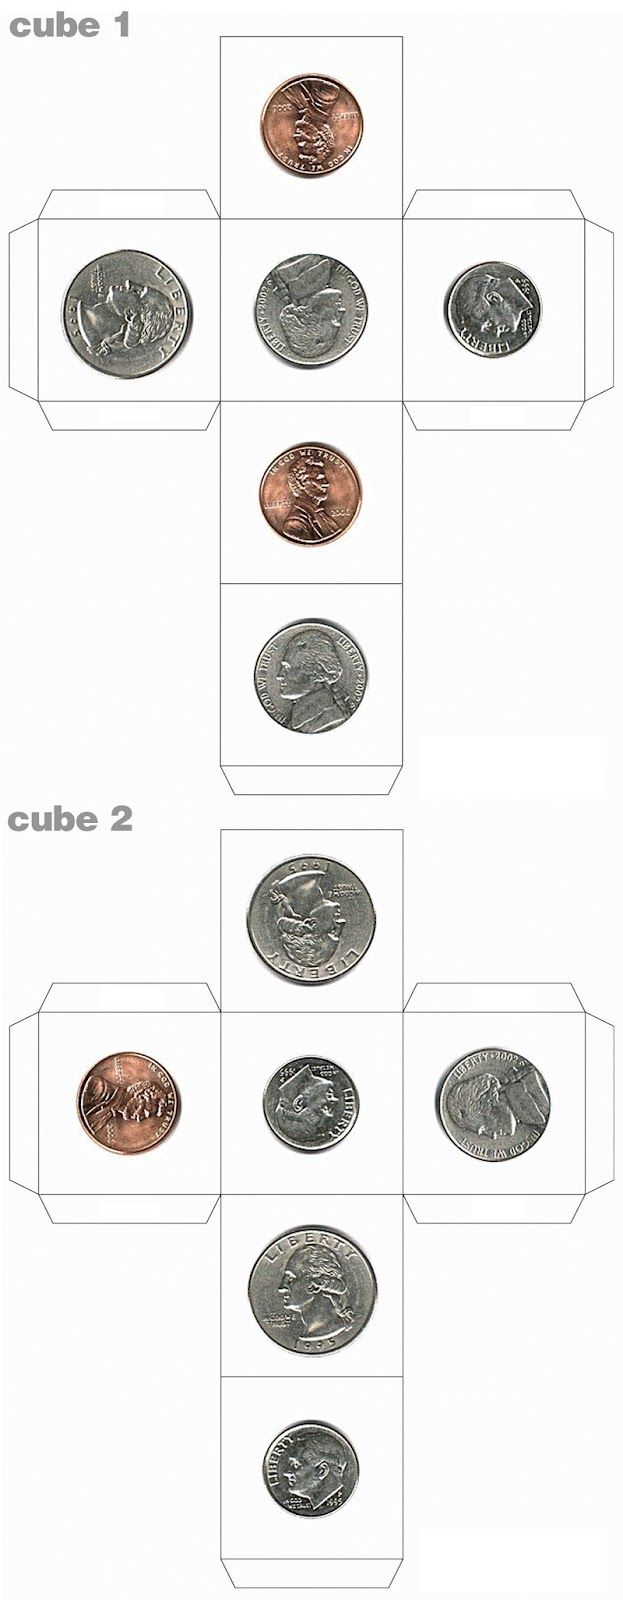 money cubes - i suggest you just hot glue real/fake money onto a wooden die.  lots of good activities you can make up for students from pre-school to older.